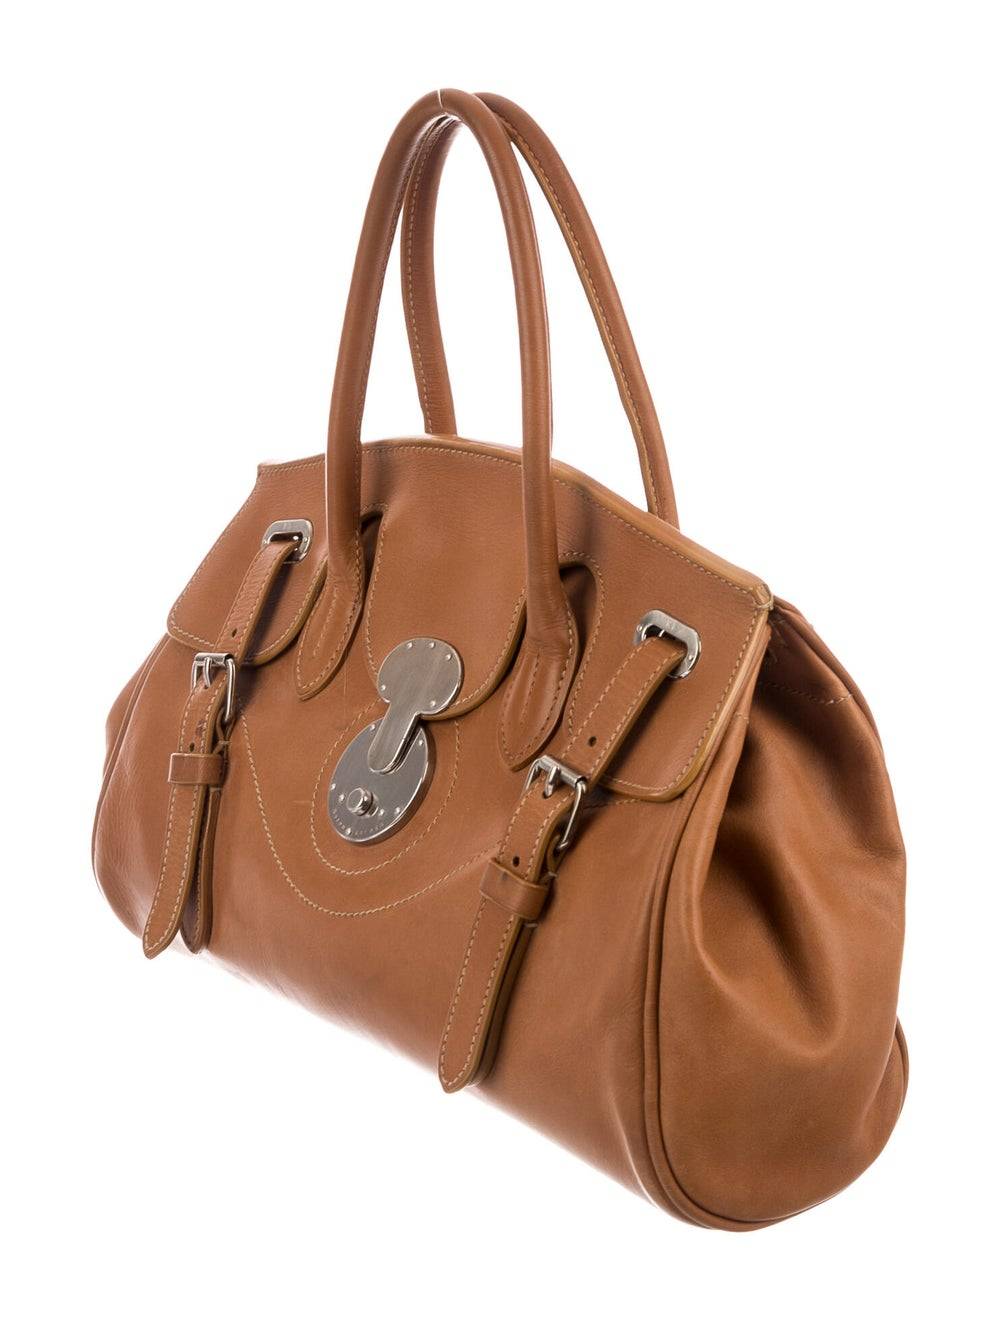 Ralph Lauren Ricky Top Handle Bag Brown - image 3